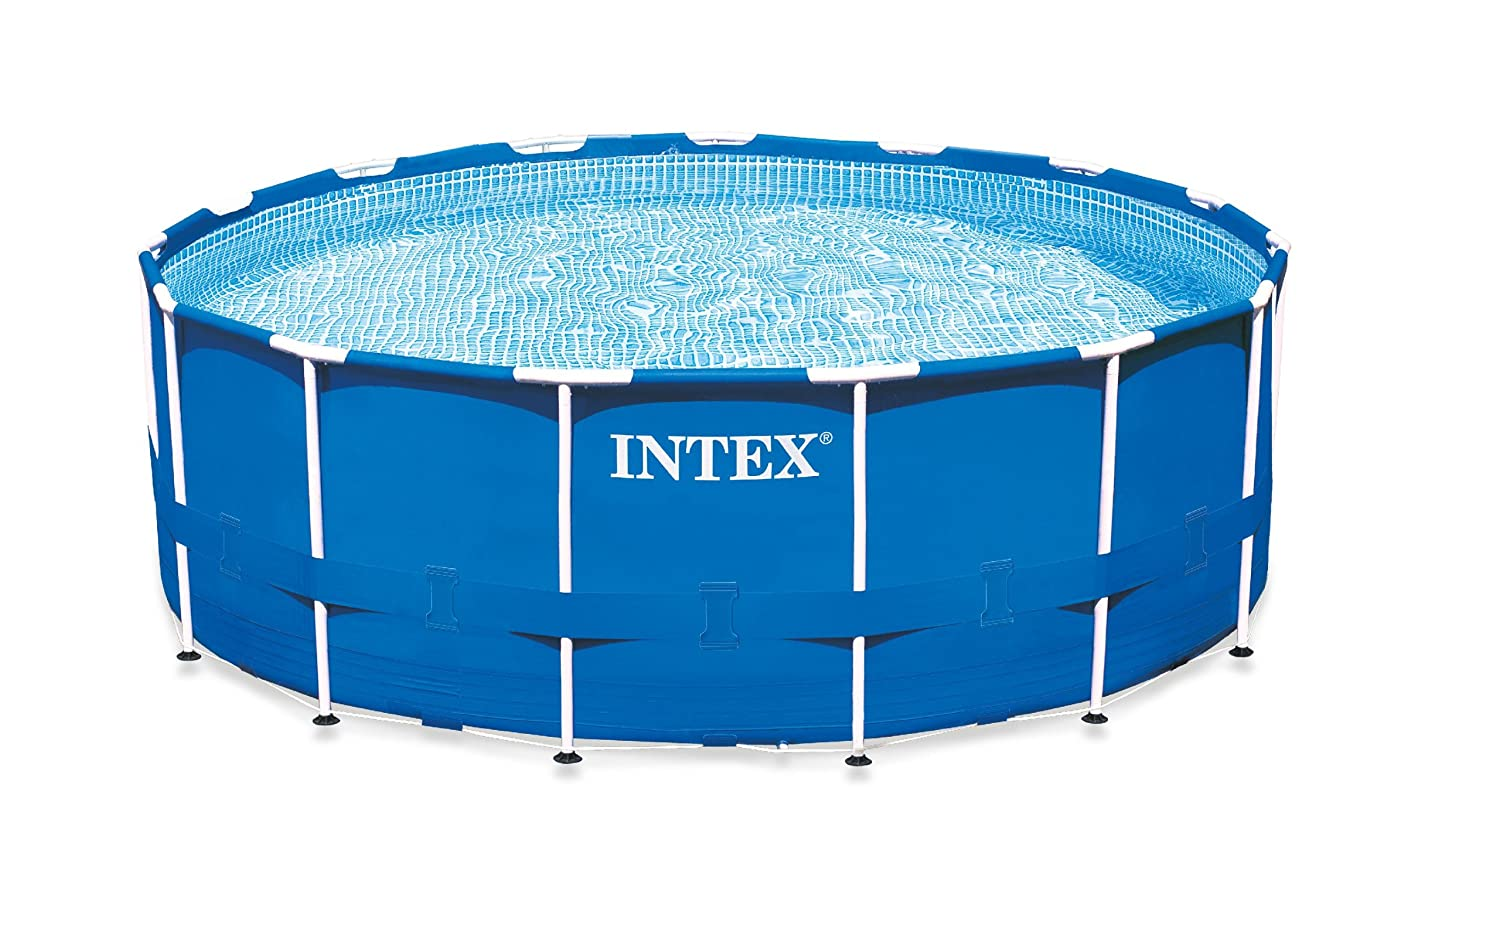 Intex 15 Foot by 42 Inch Round Metal Frame Pool Set